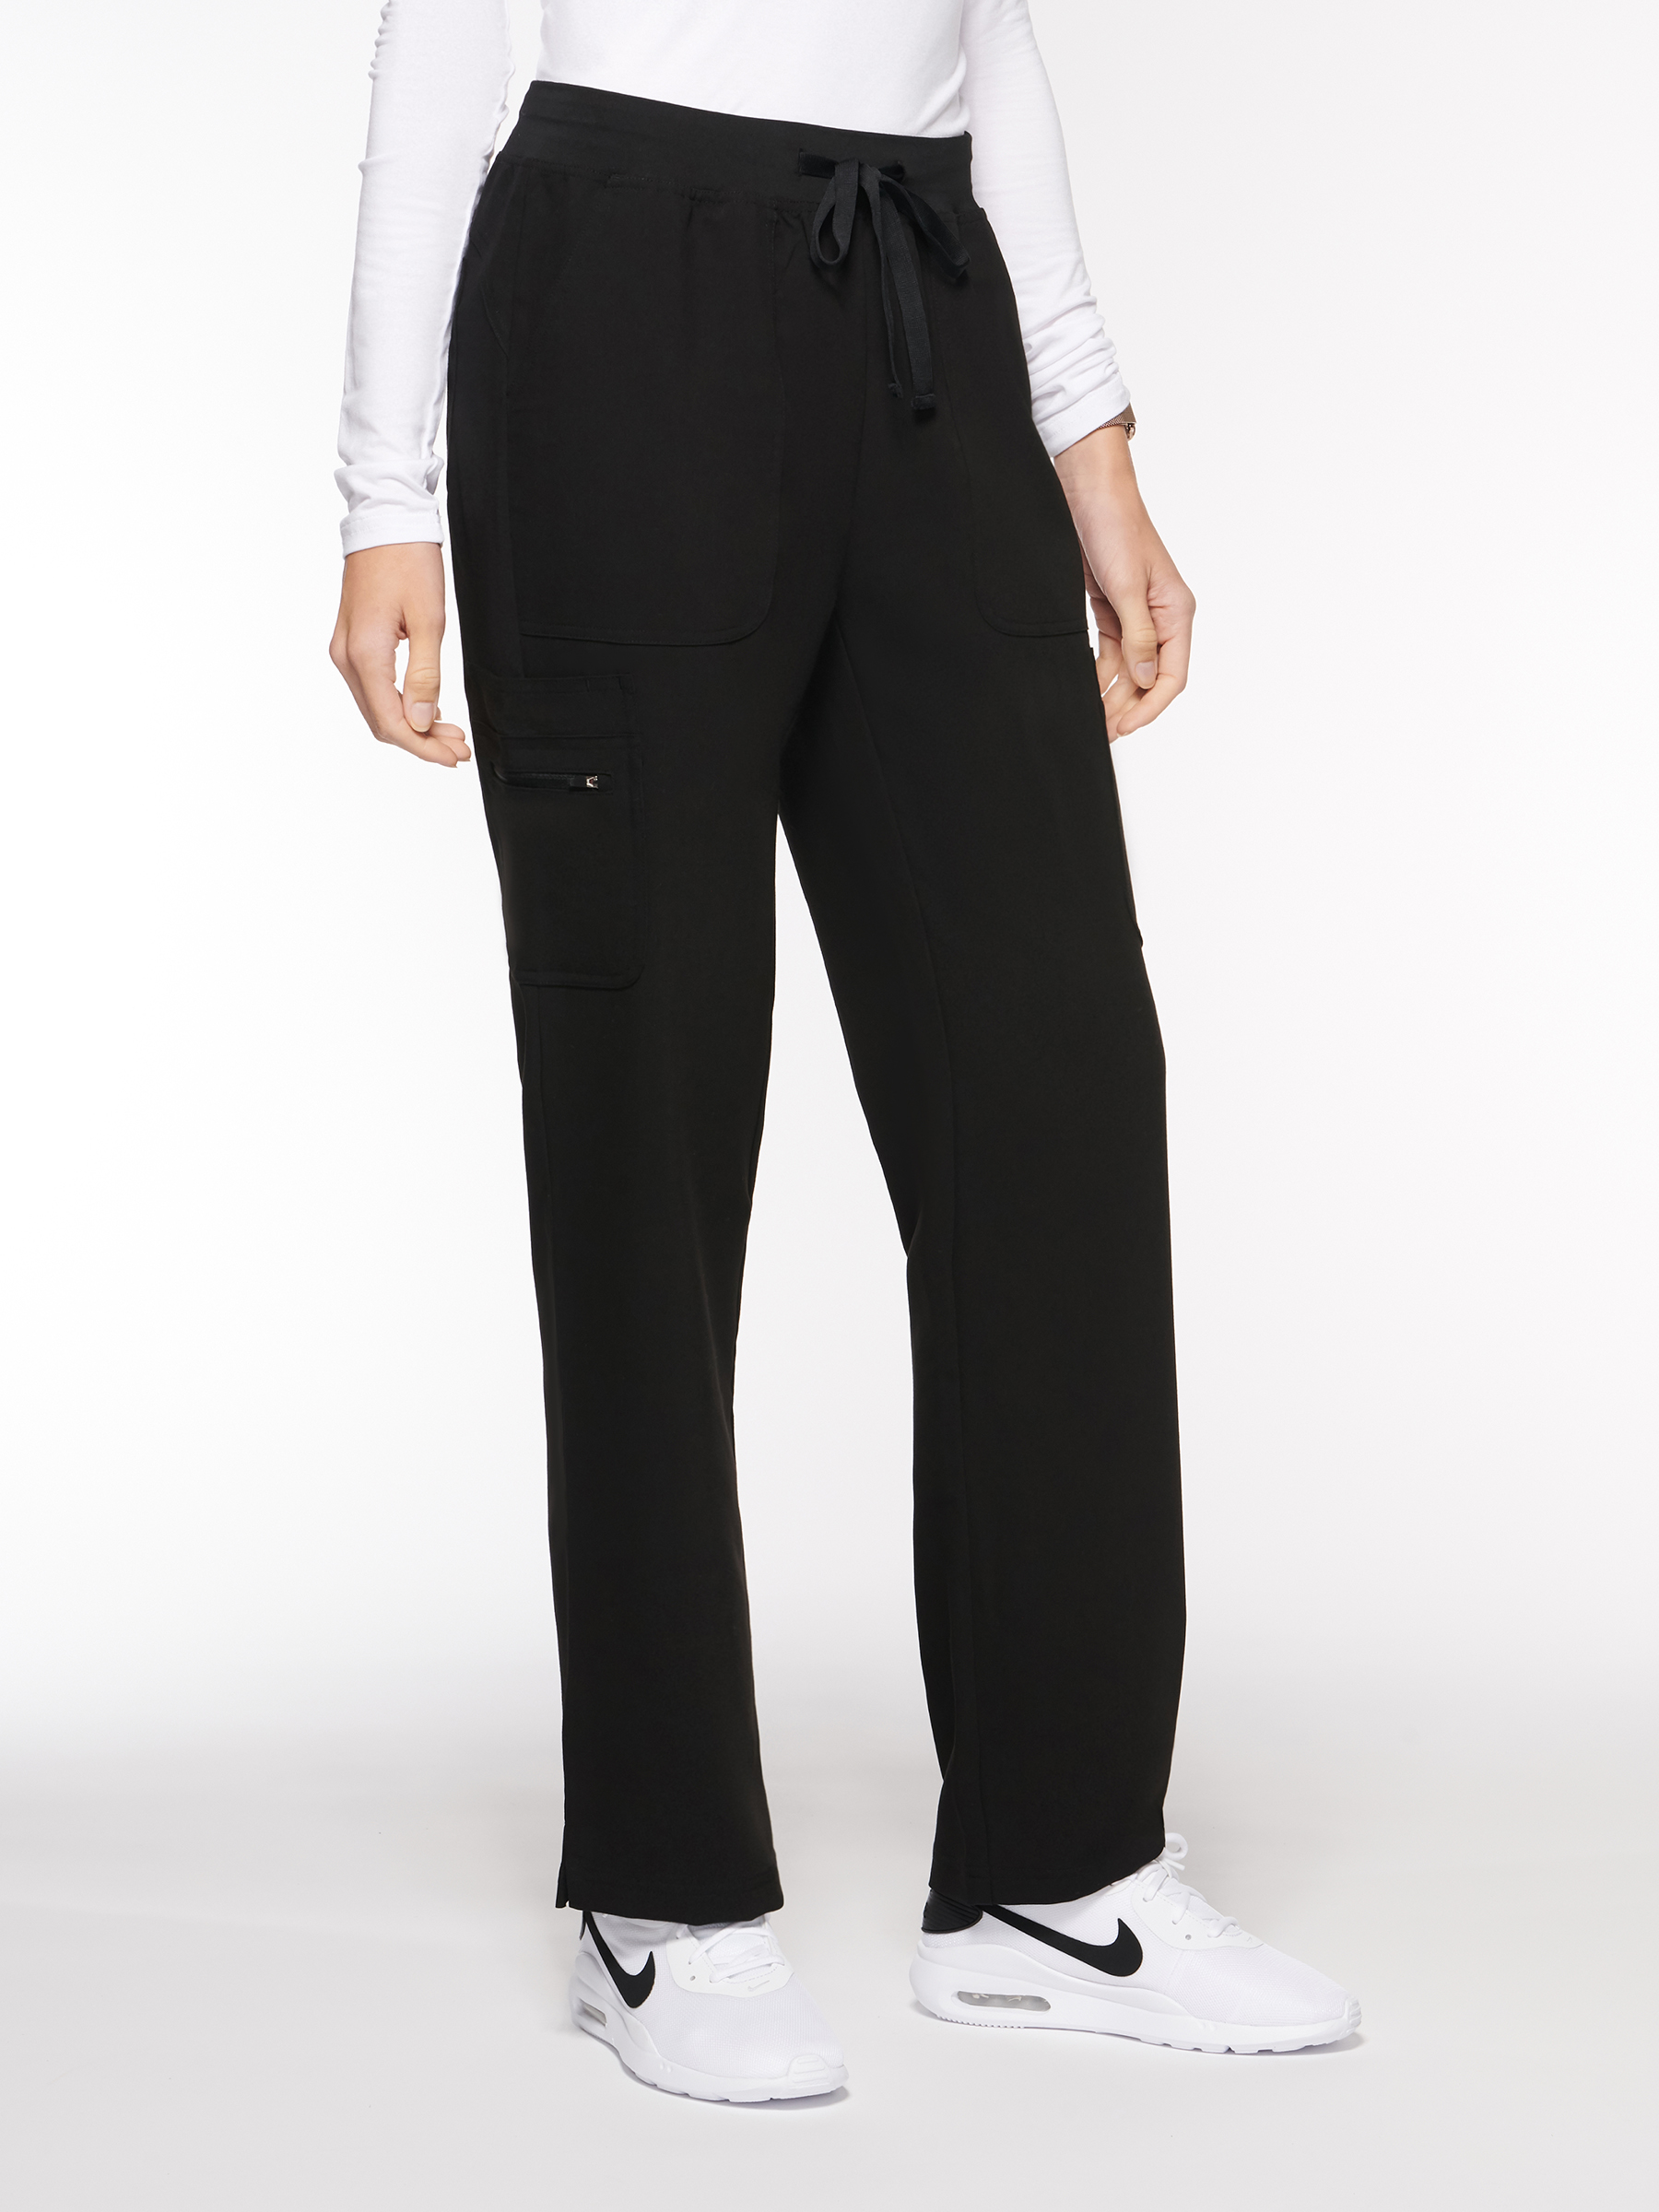 Womens Pant Yoga Pant with 9 Pockets